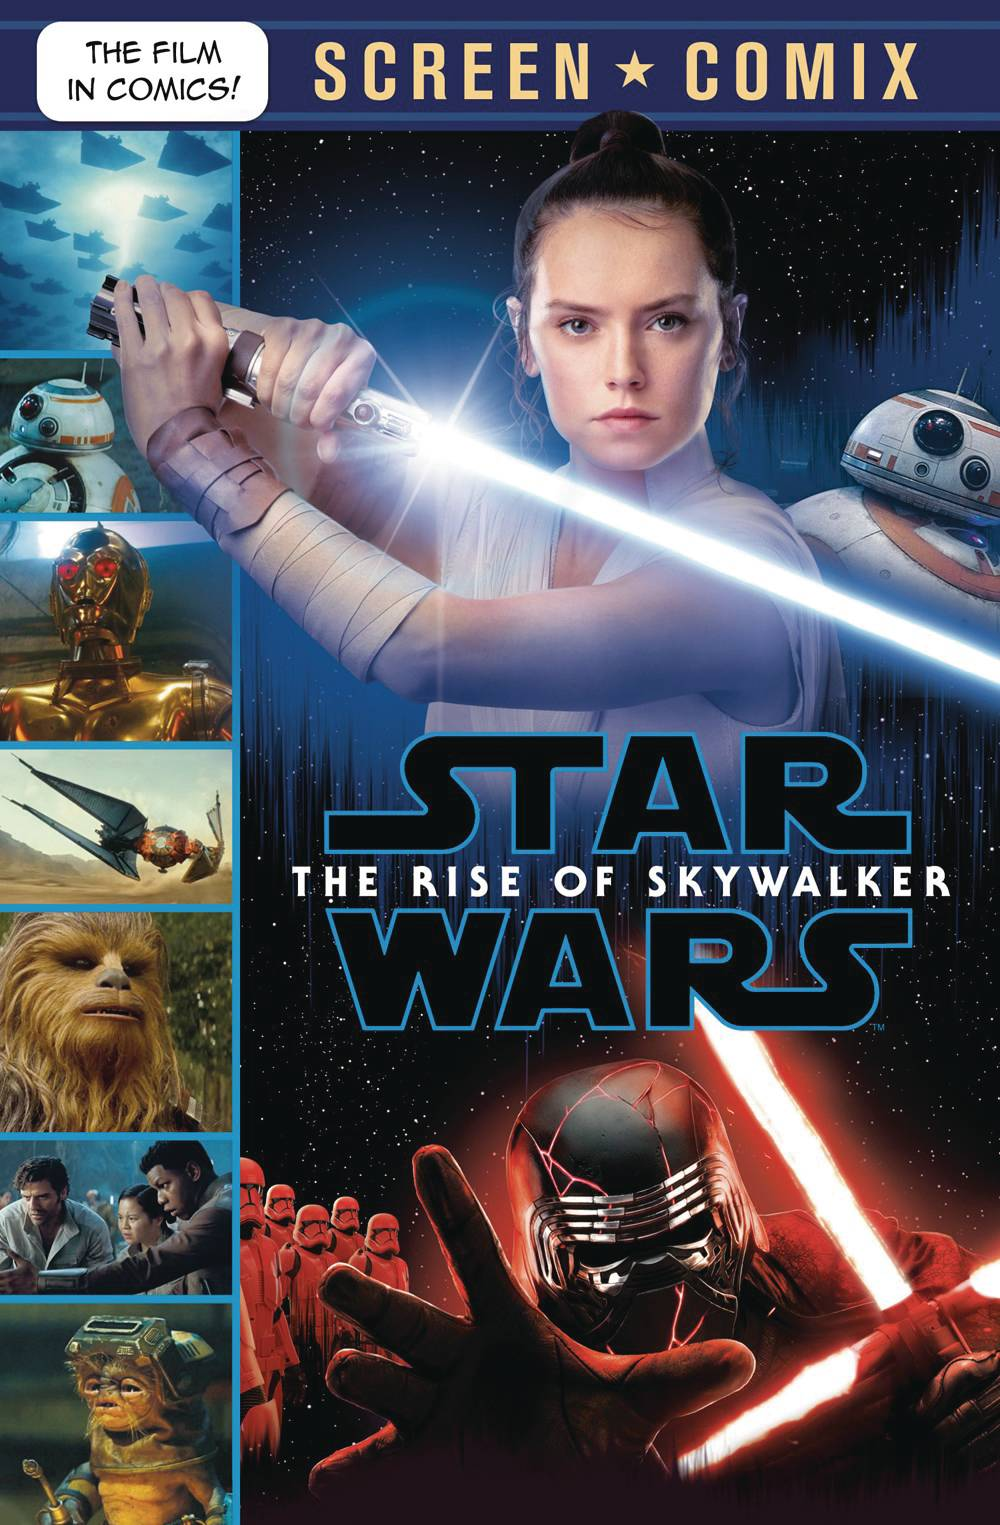 STAR WARS RISE OF SKYWALKER SCREEN COMIX TP 01